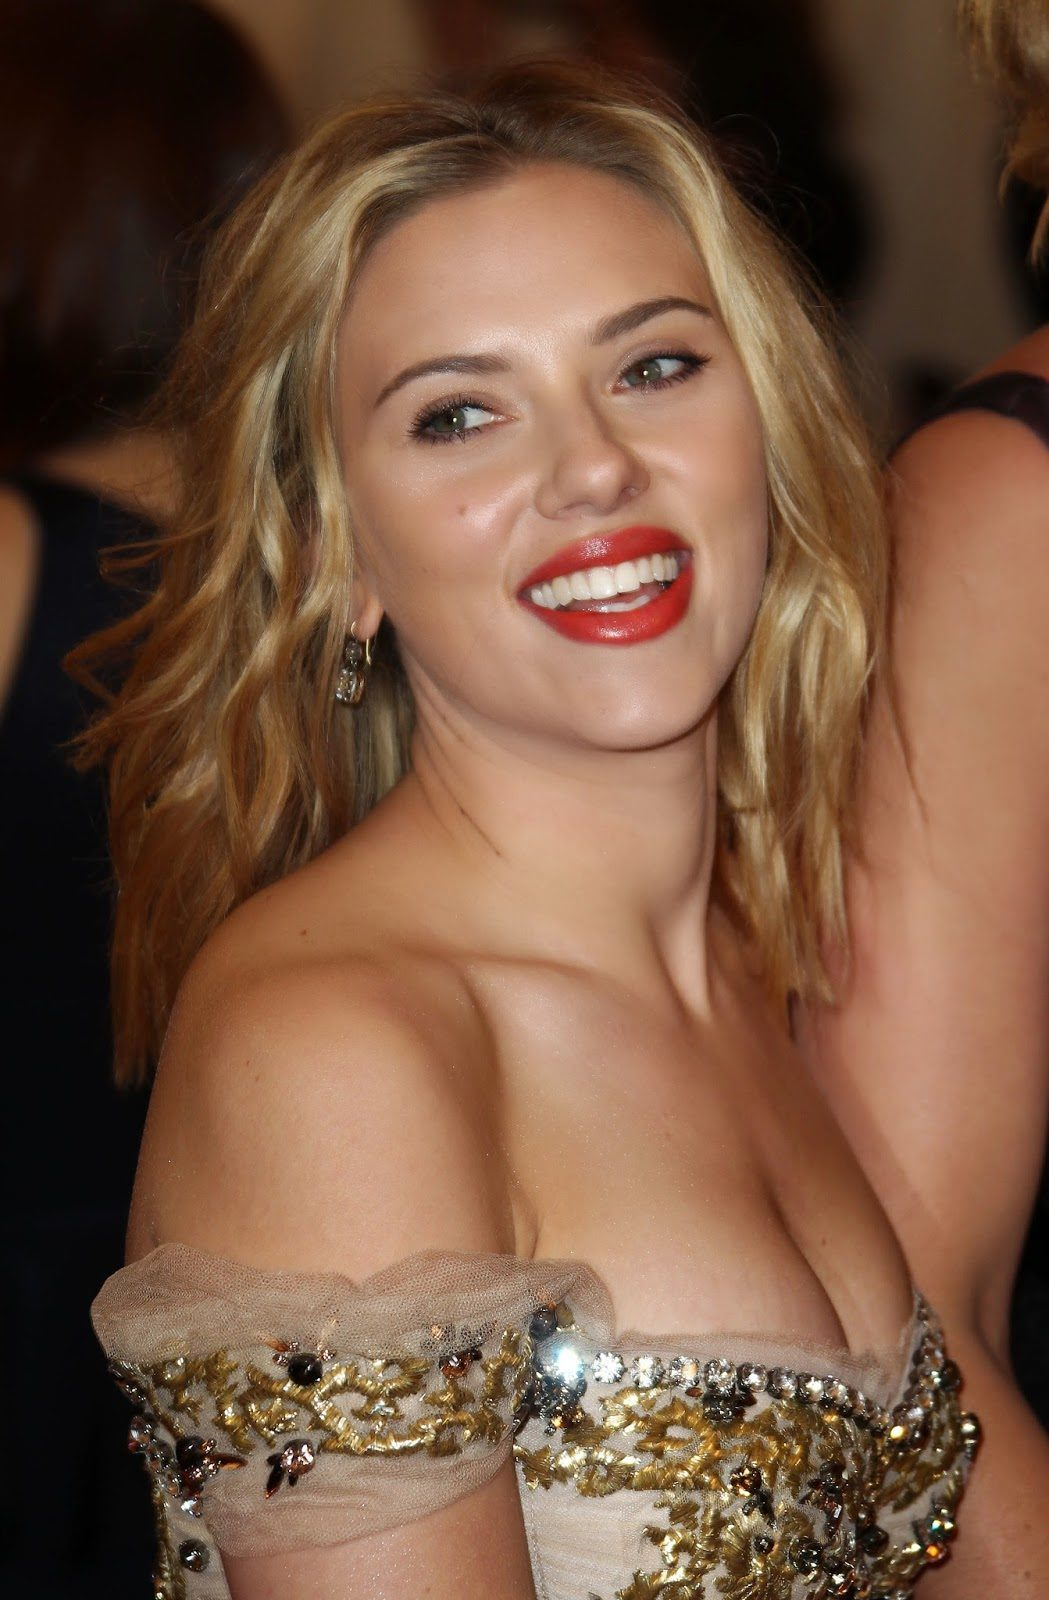 scarlett-johansson-hot-picture